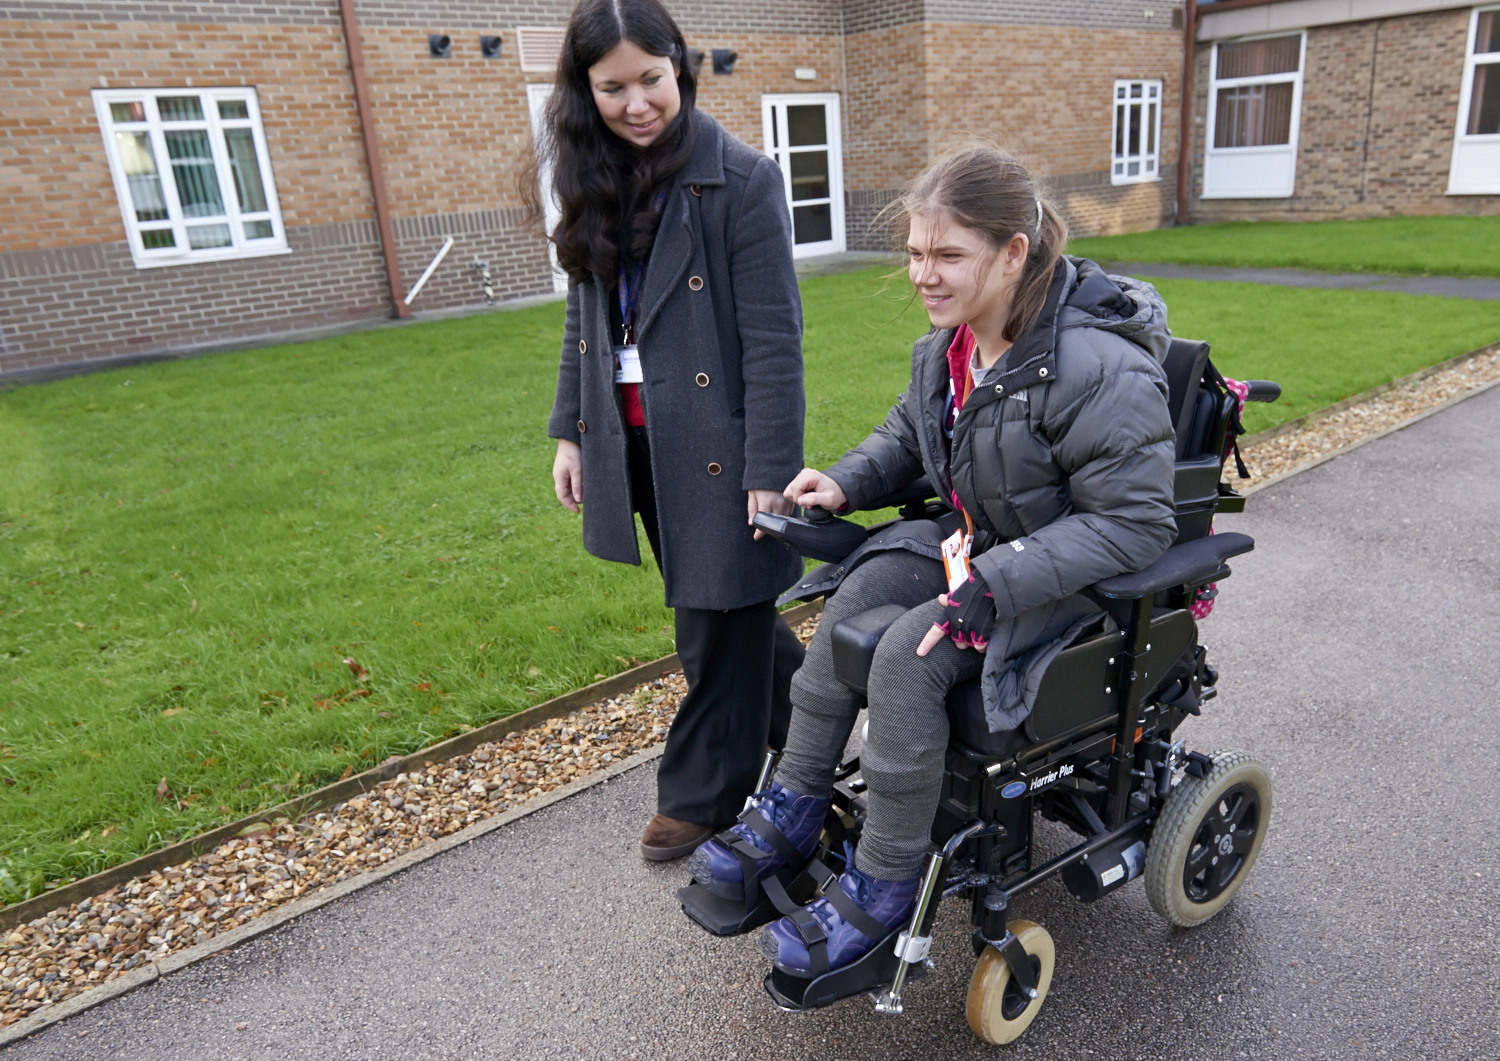 Student and staff member exploring the college campus on a specialist college open day